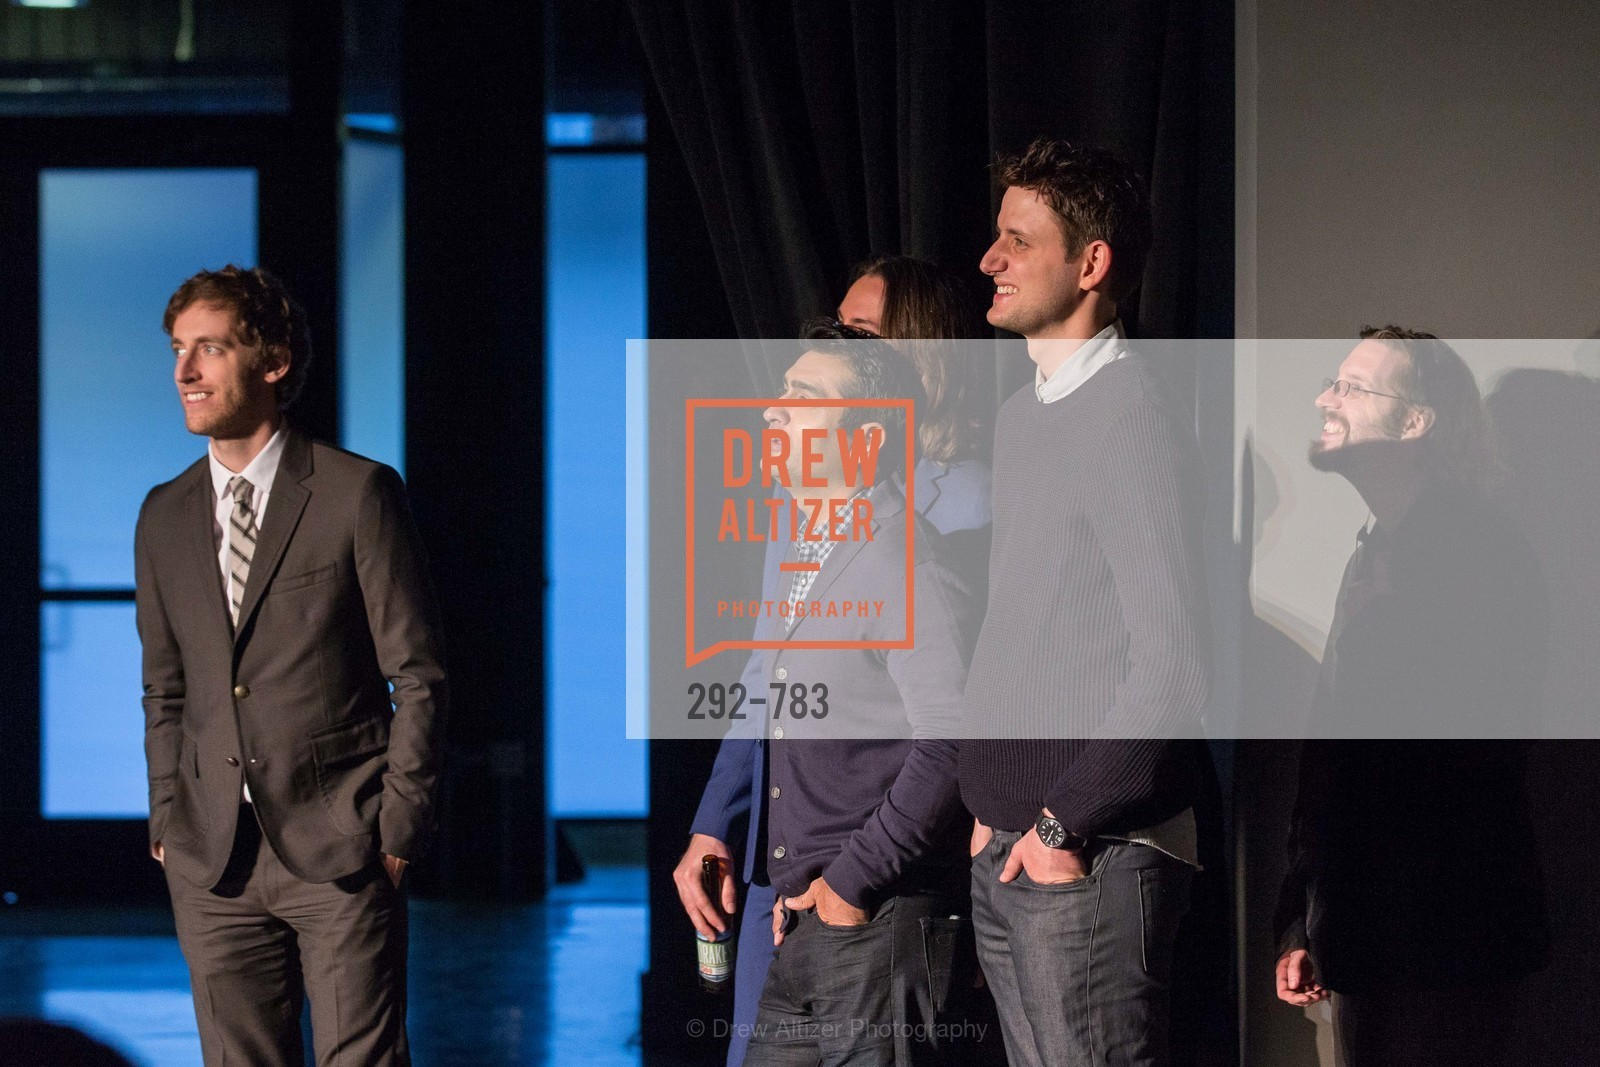 Thomas Middleditch, Kumail Nanjiani, Zach Woods, HBO'S SILICON VALLEY San Francisco Screening, US, April 8th, 2015,Drew Altizer, Drew Altizer Photography, full-service agency, private events, San Francisco photographer, photographer california